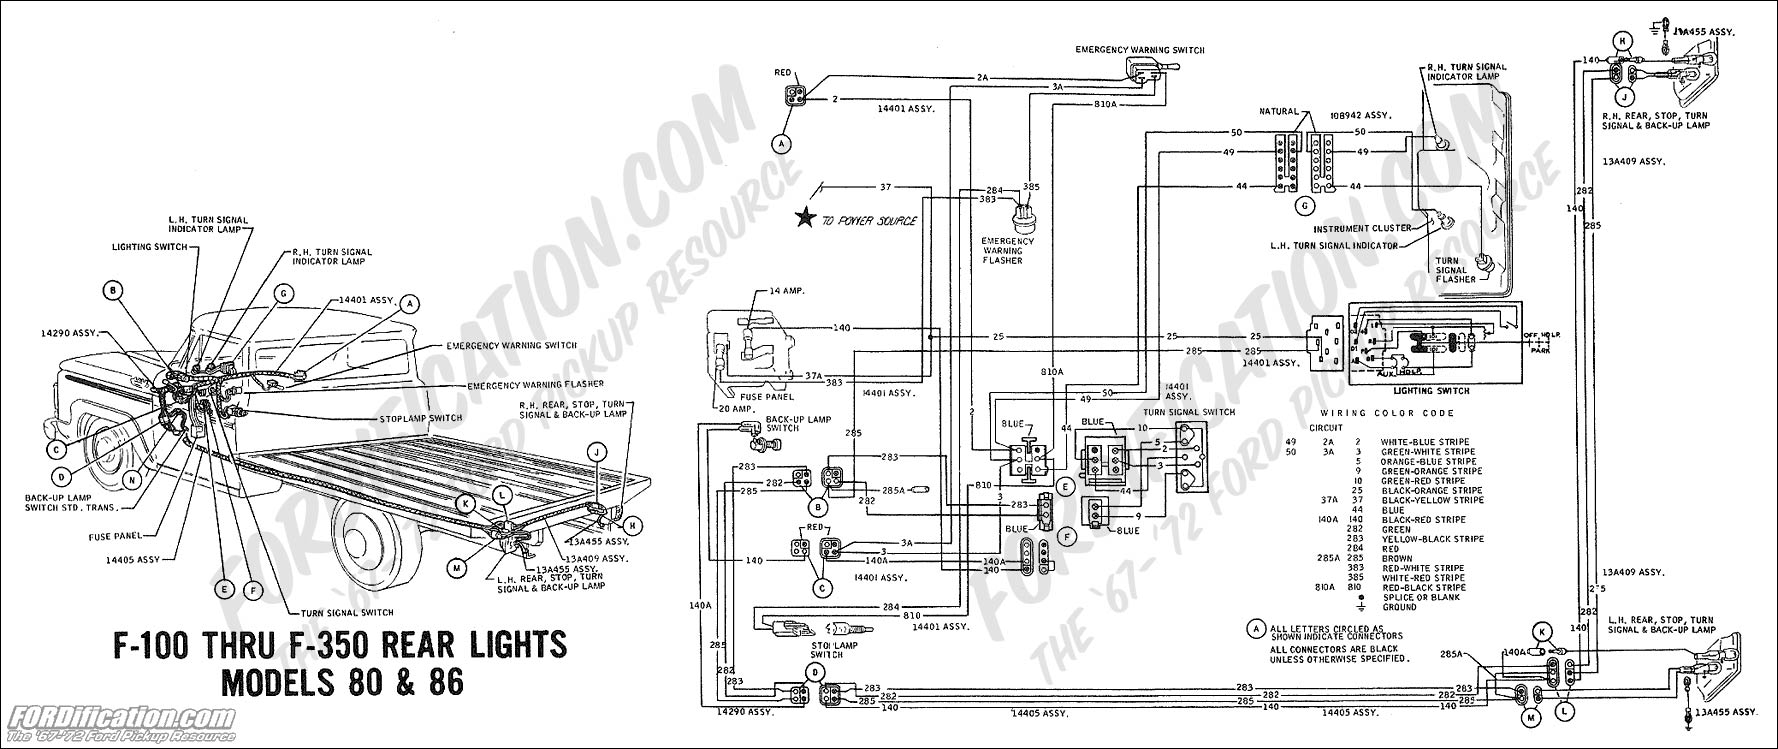 hight resolution of 86 ford f700 wiring diagram wiring diagram forward1986 ford f700 wiring diagram wiring diagram forward 1986